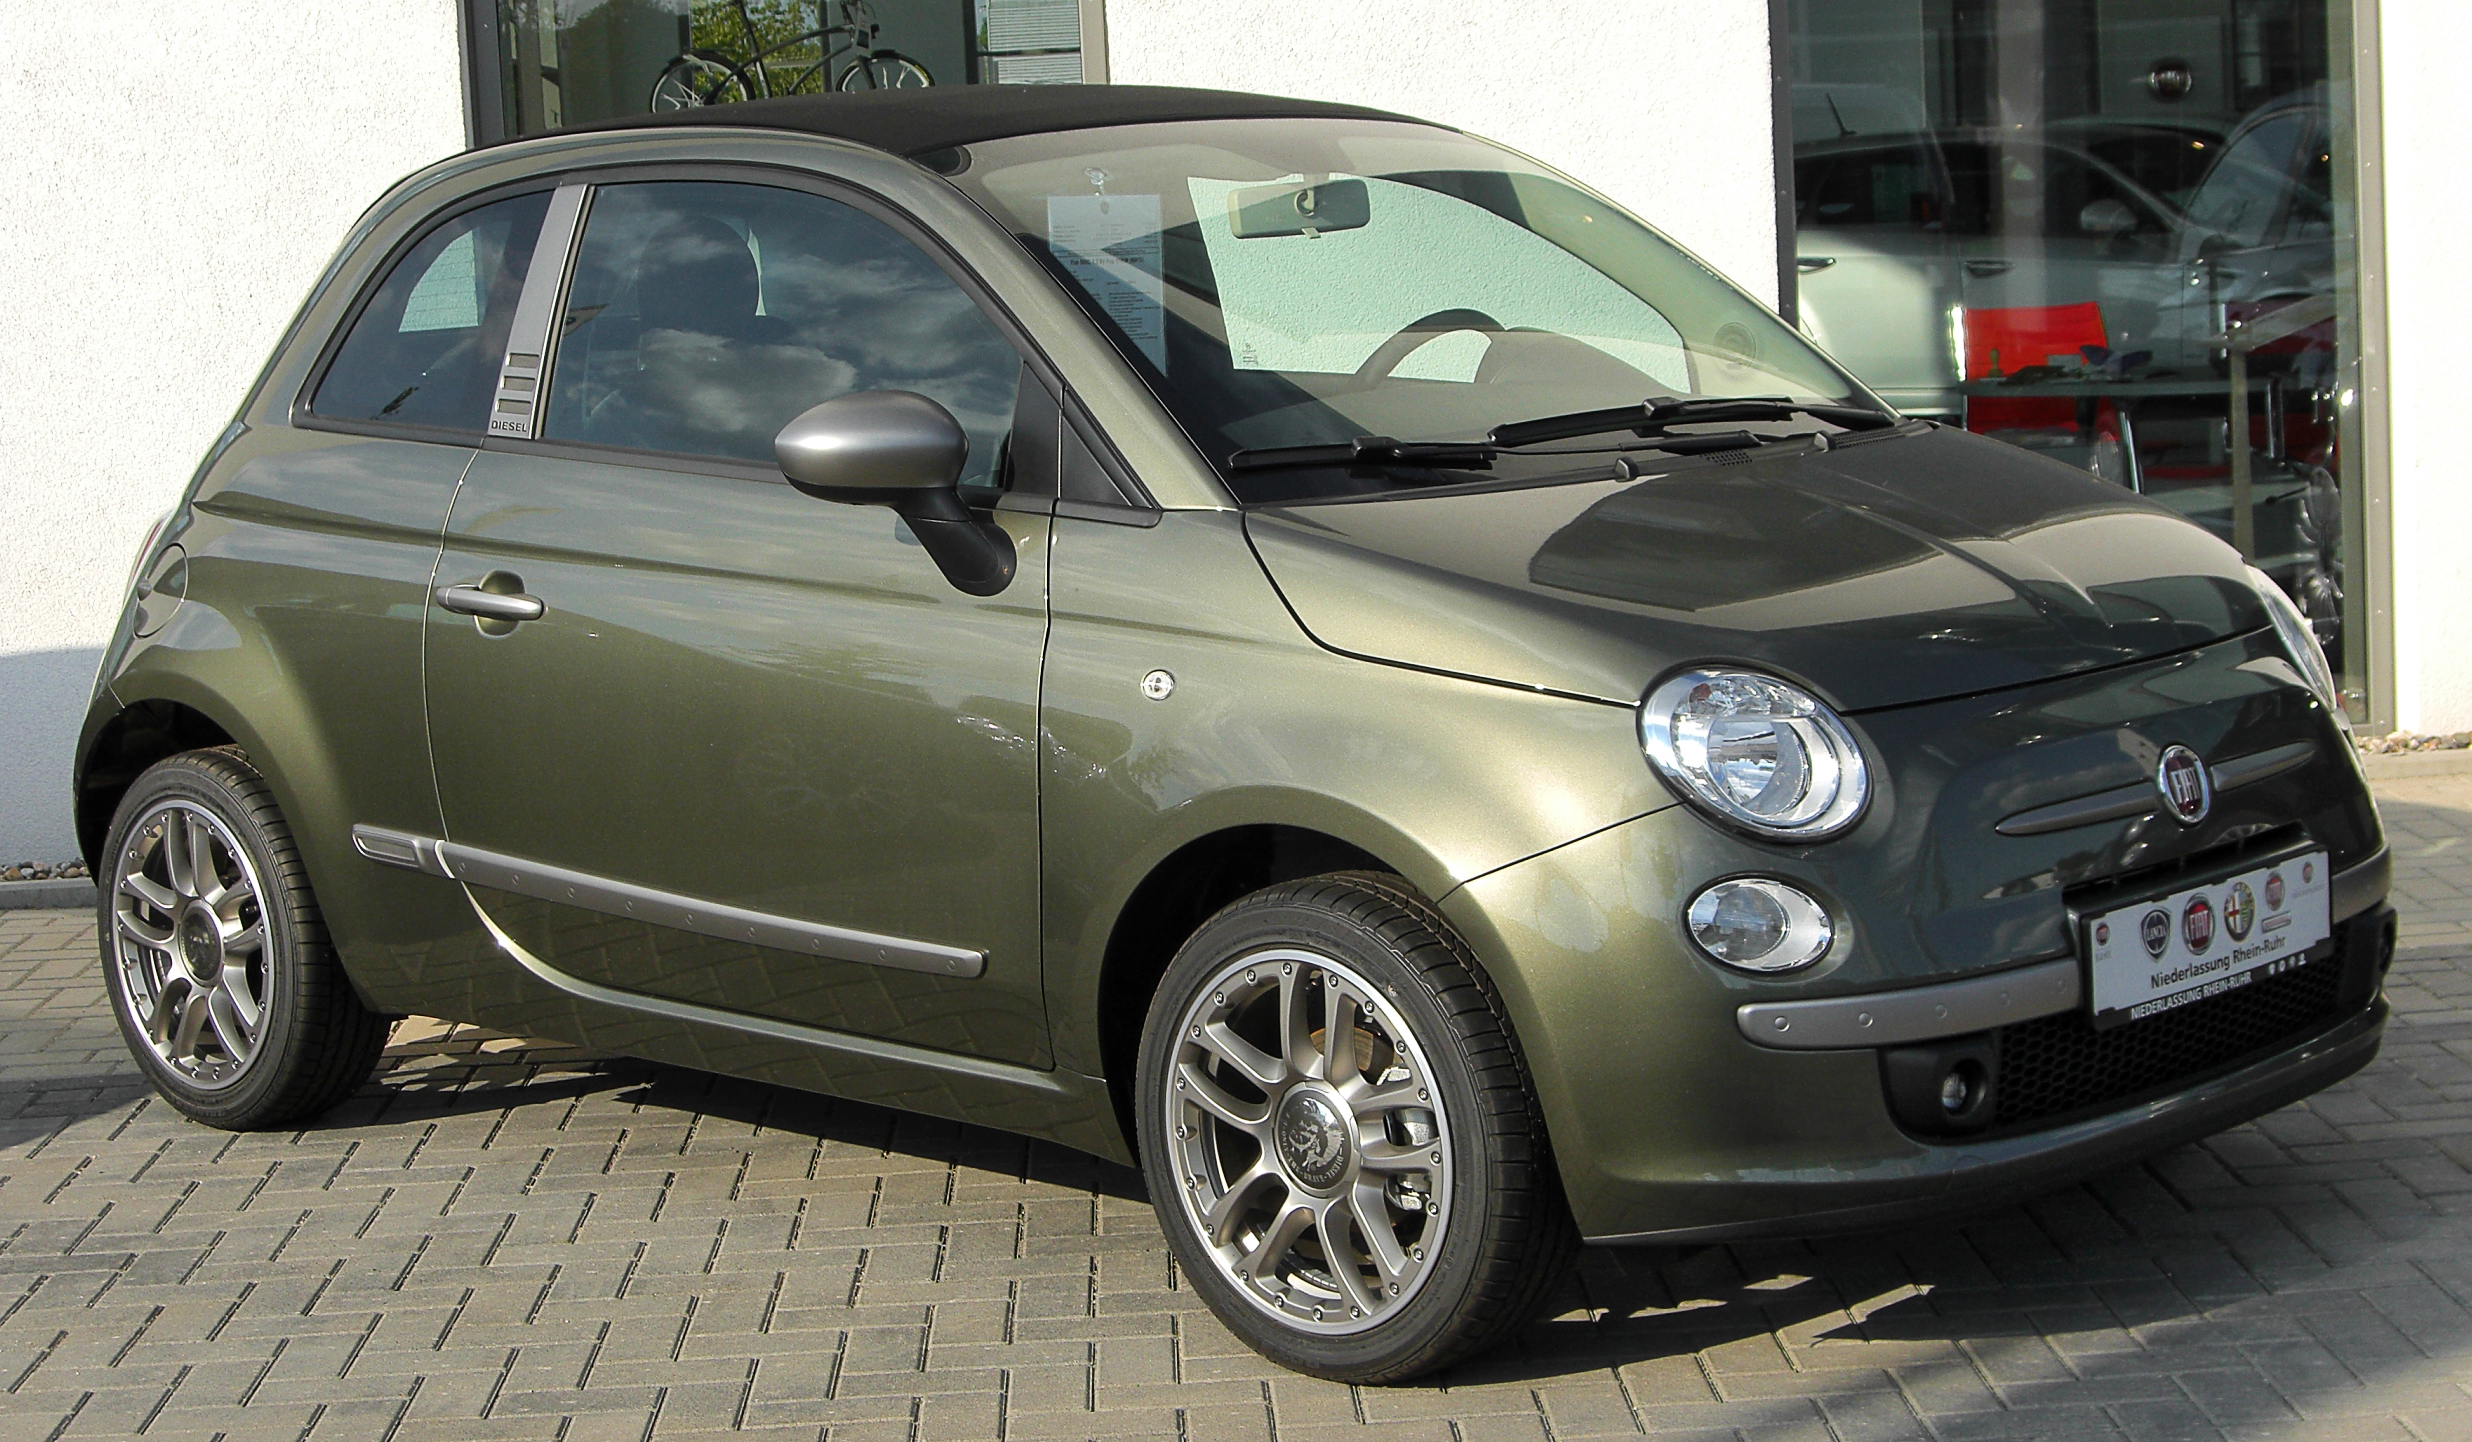 file fiat 500 c by diesel 1 2 8v pop front wikimedia commons. Black Bedroom Furniture Sets. Home Design Ideas